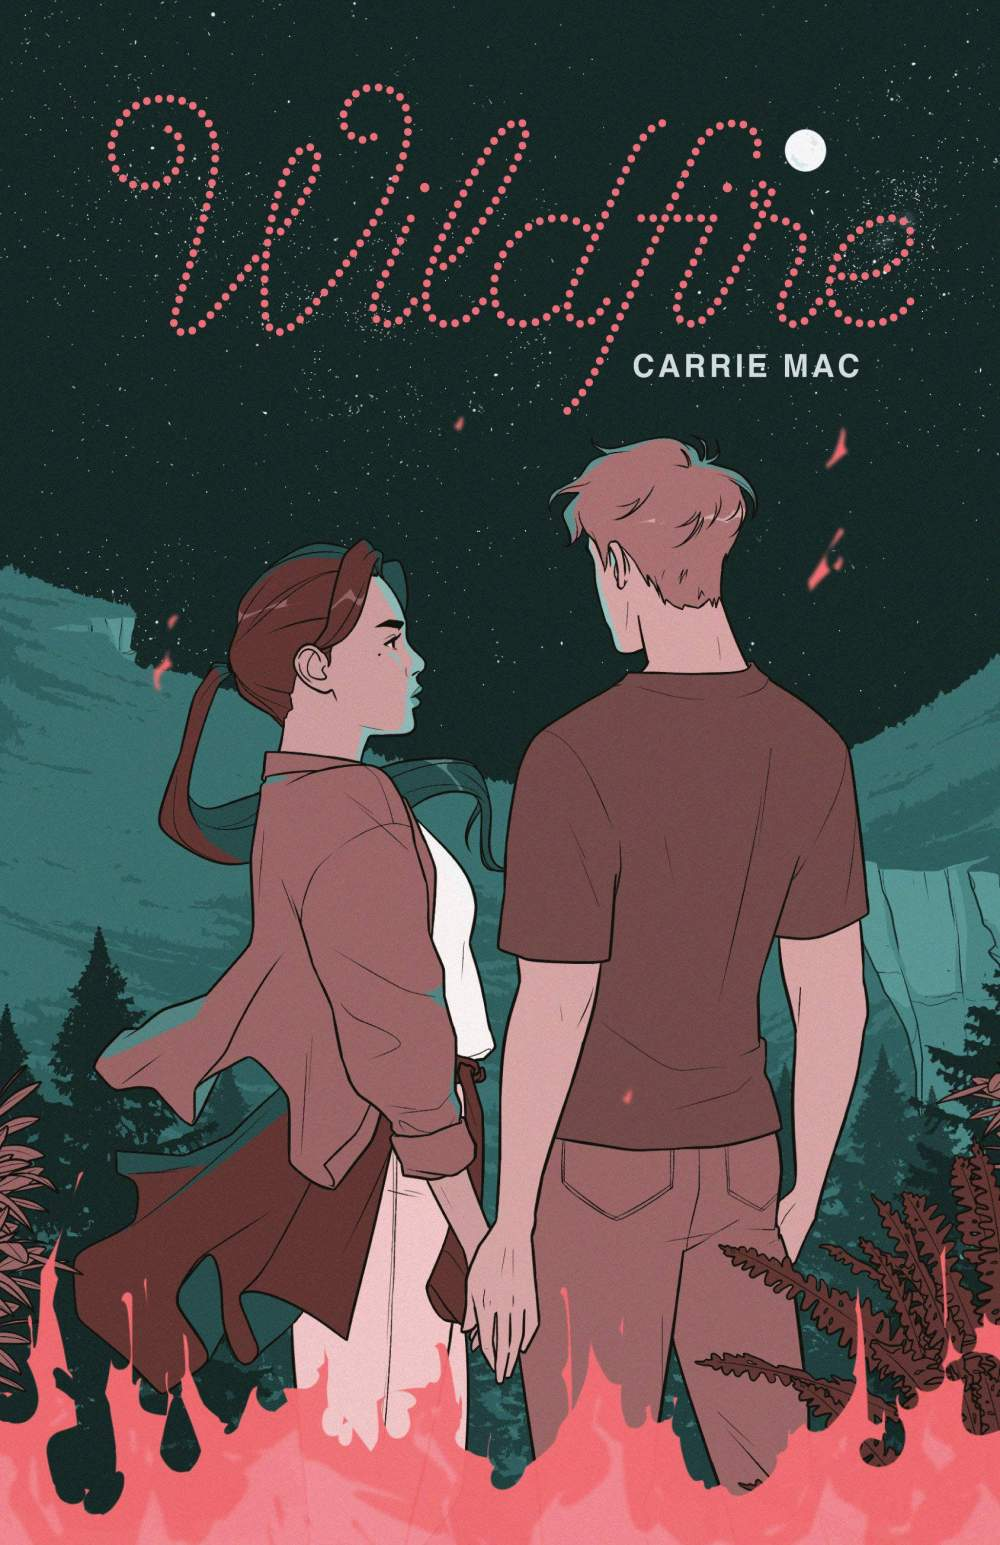 'Wildfire' by Carrie Mac